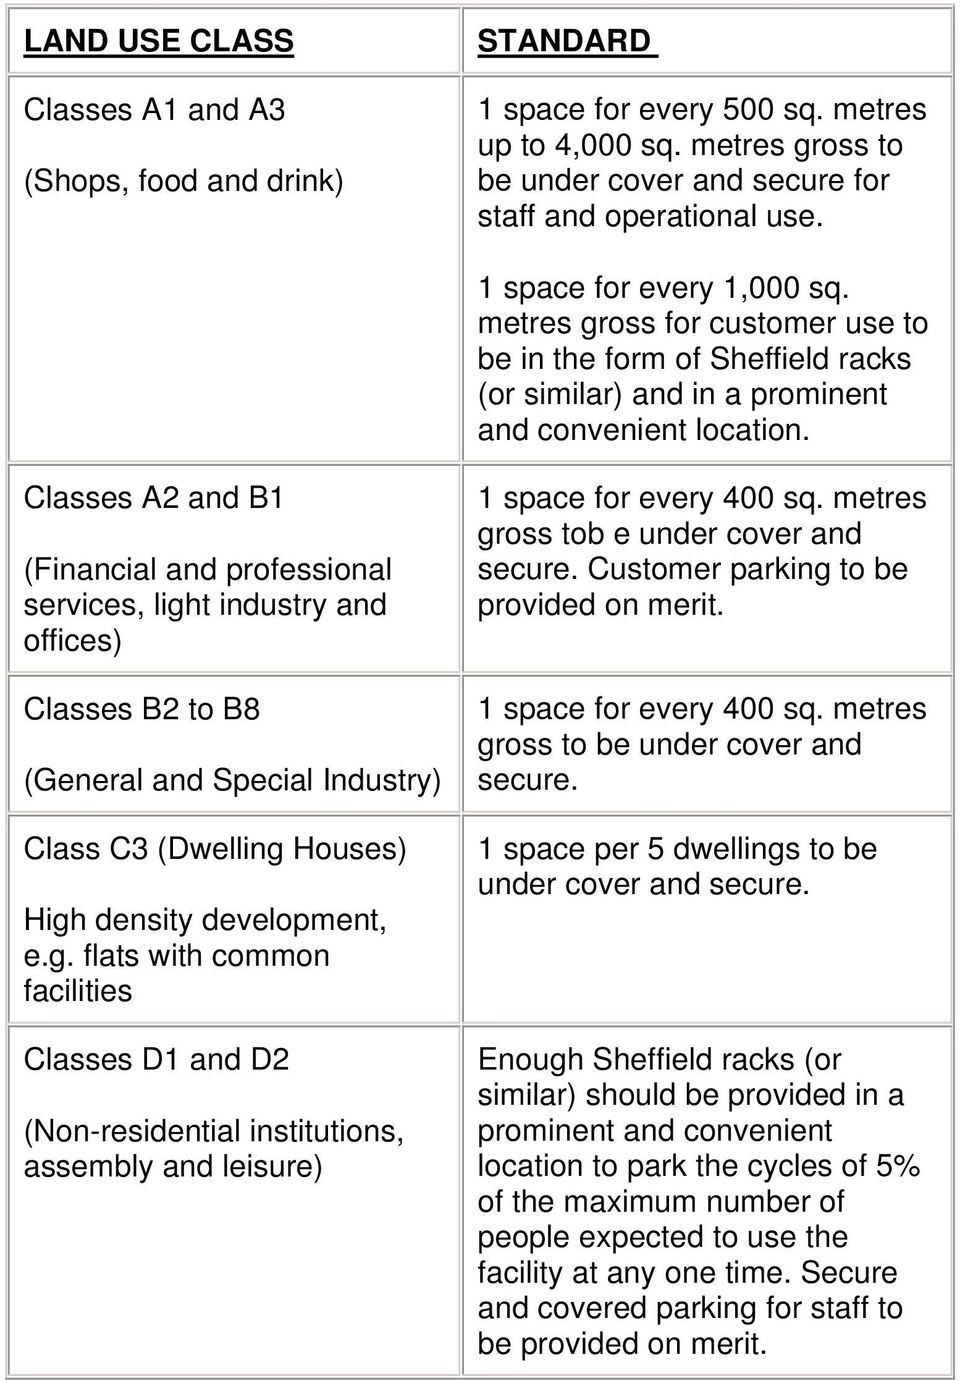 Classes A2 and B1 (Financial and professional services, light industry and offices) Classes B2 to B8 (General and Special Industry) Class C3 (Dwelling Houses) High density development, e.g. flats with common facilities Classes D1 and D2 (Non-residential institutions, assembly and leisure) 1 space for every 400 sq.